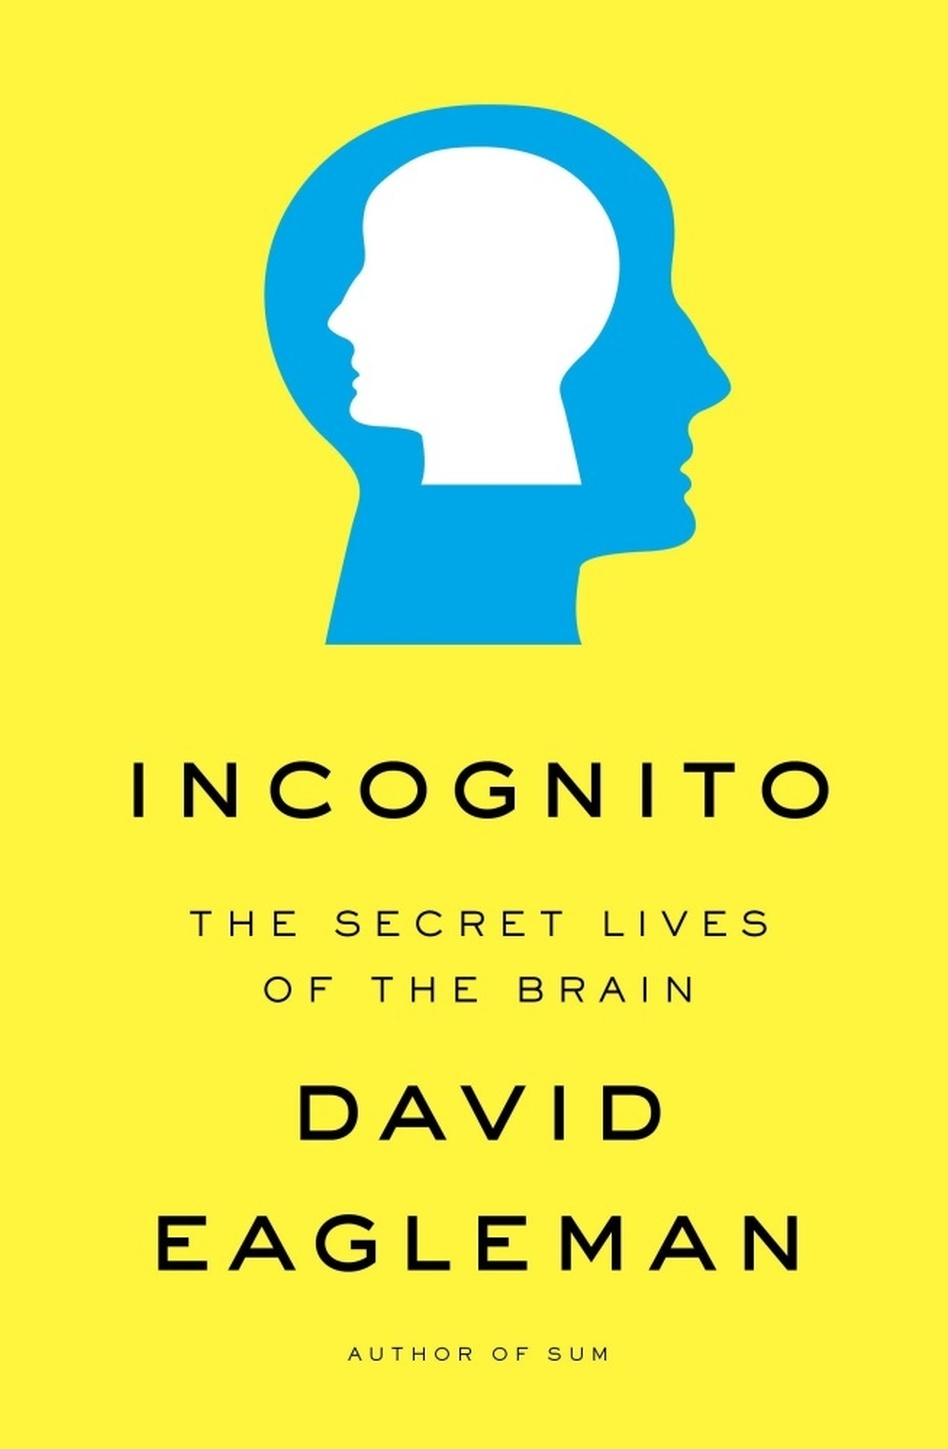 Incognito whats hiding in the unconscious mind wbur news incognito whats hiding in the unconscious mind3711 greentooth Image collections